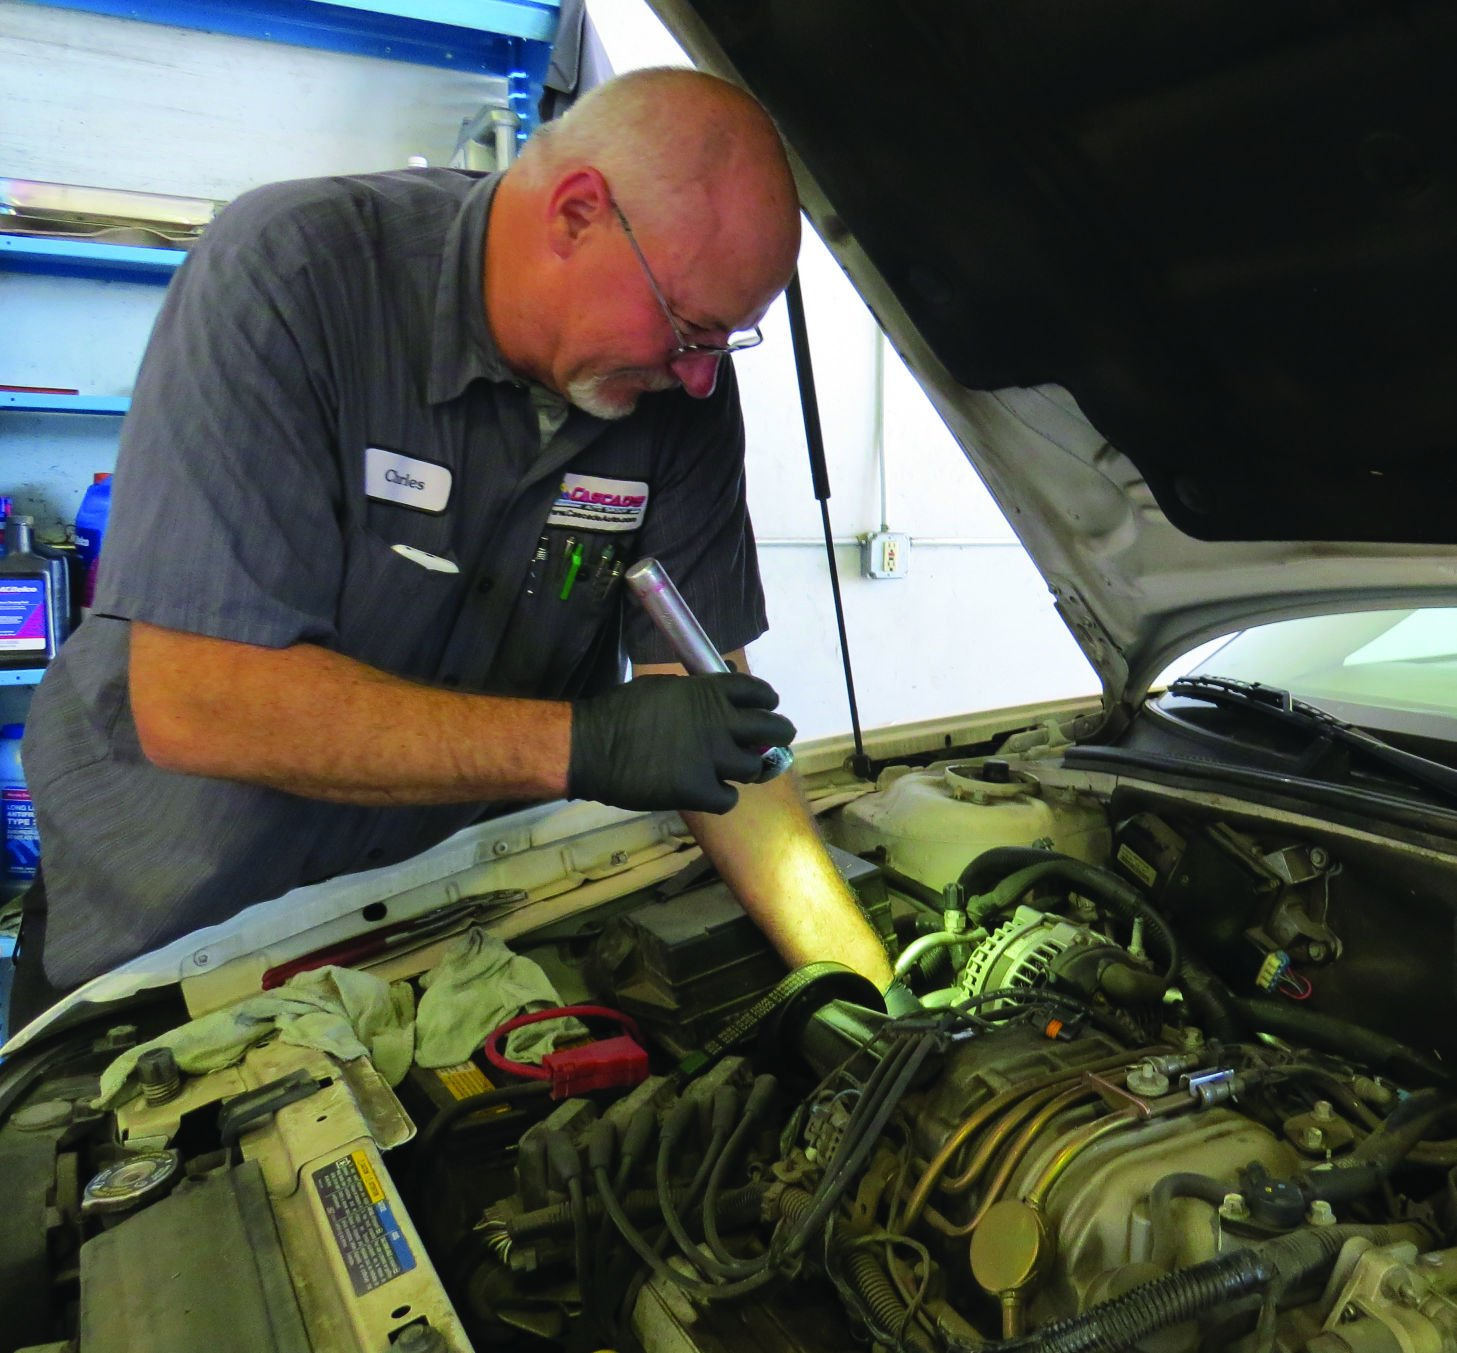 Cascade Auto To Change Hands, Keep Employees